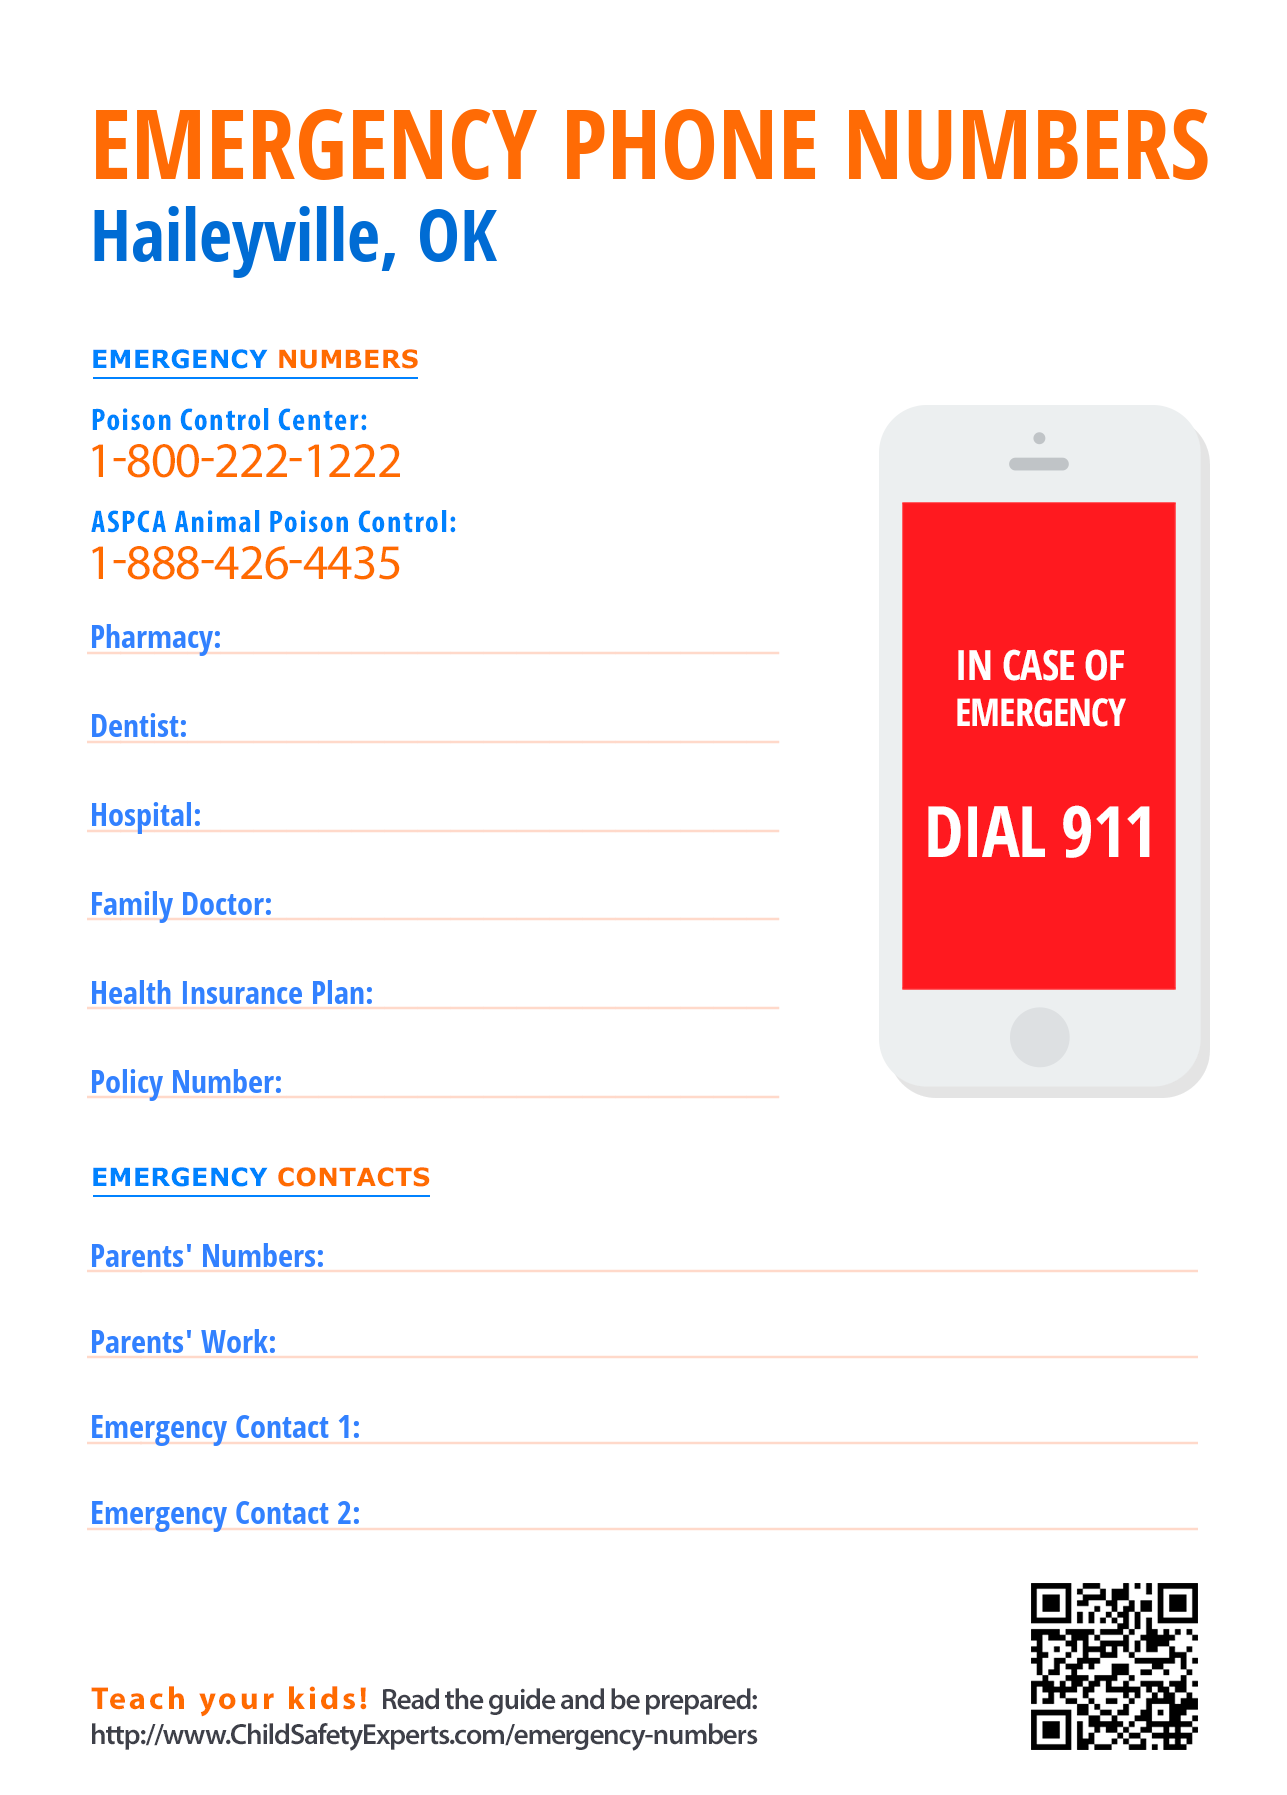 Important emergency phone numbers in Haileyville, Oklahoma